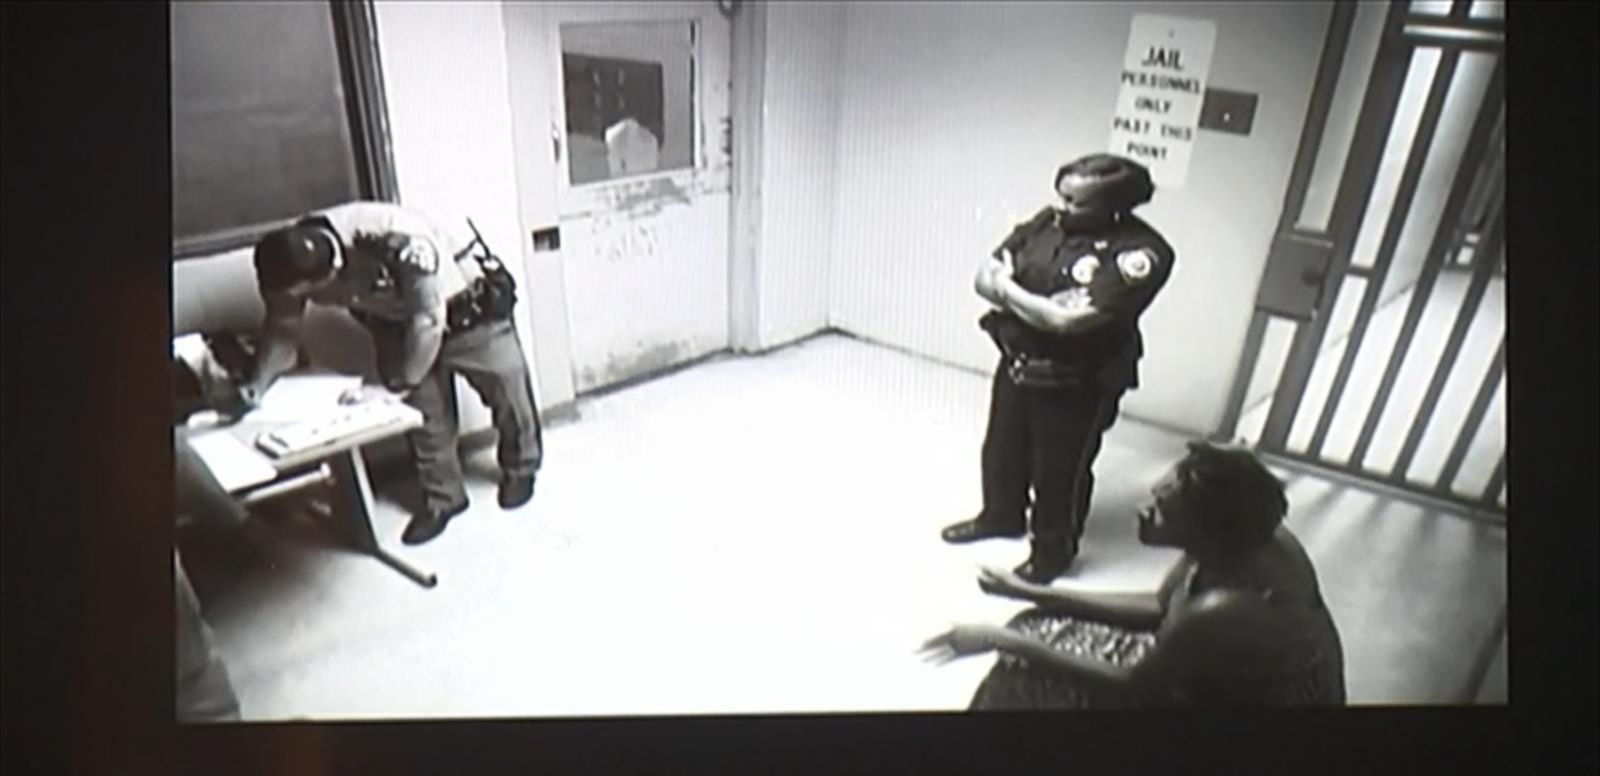 VIDEO: The new footage shows Bland's intake and booking at the Waller County jail after her arrest during a traffic stop.